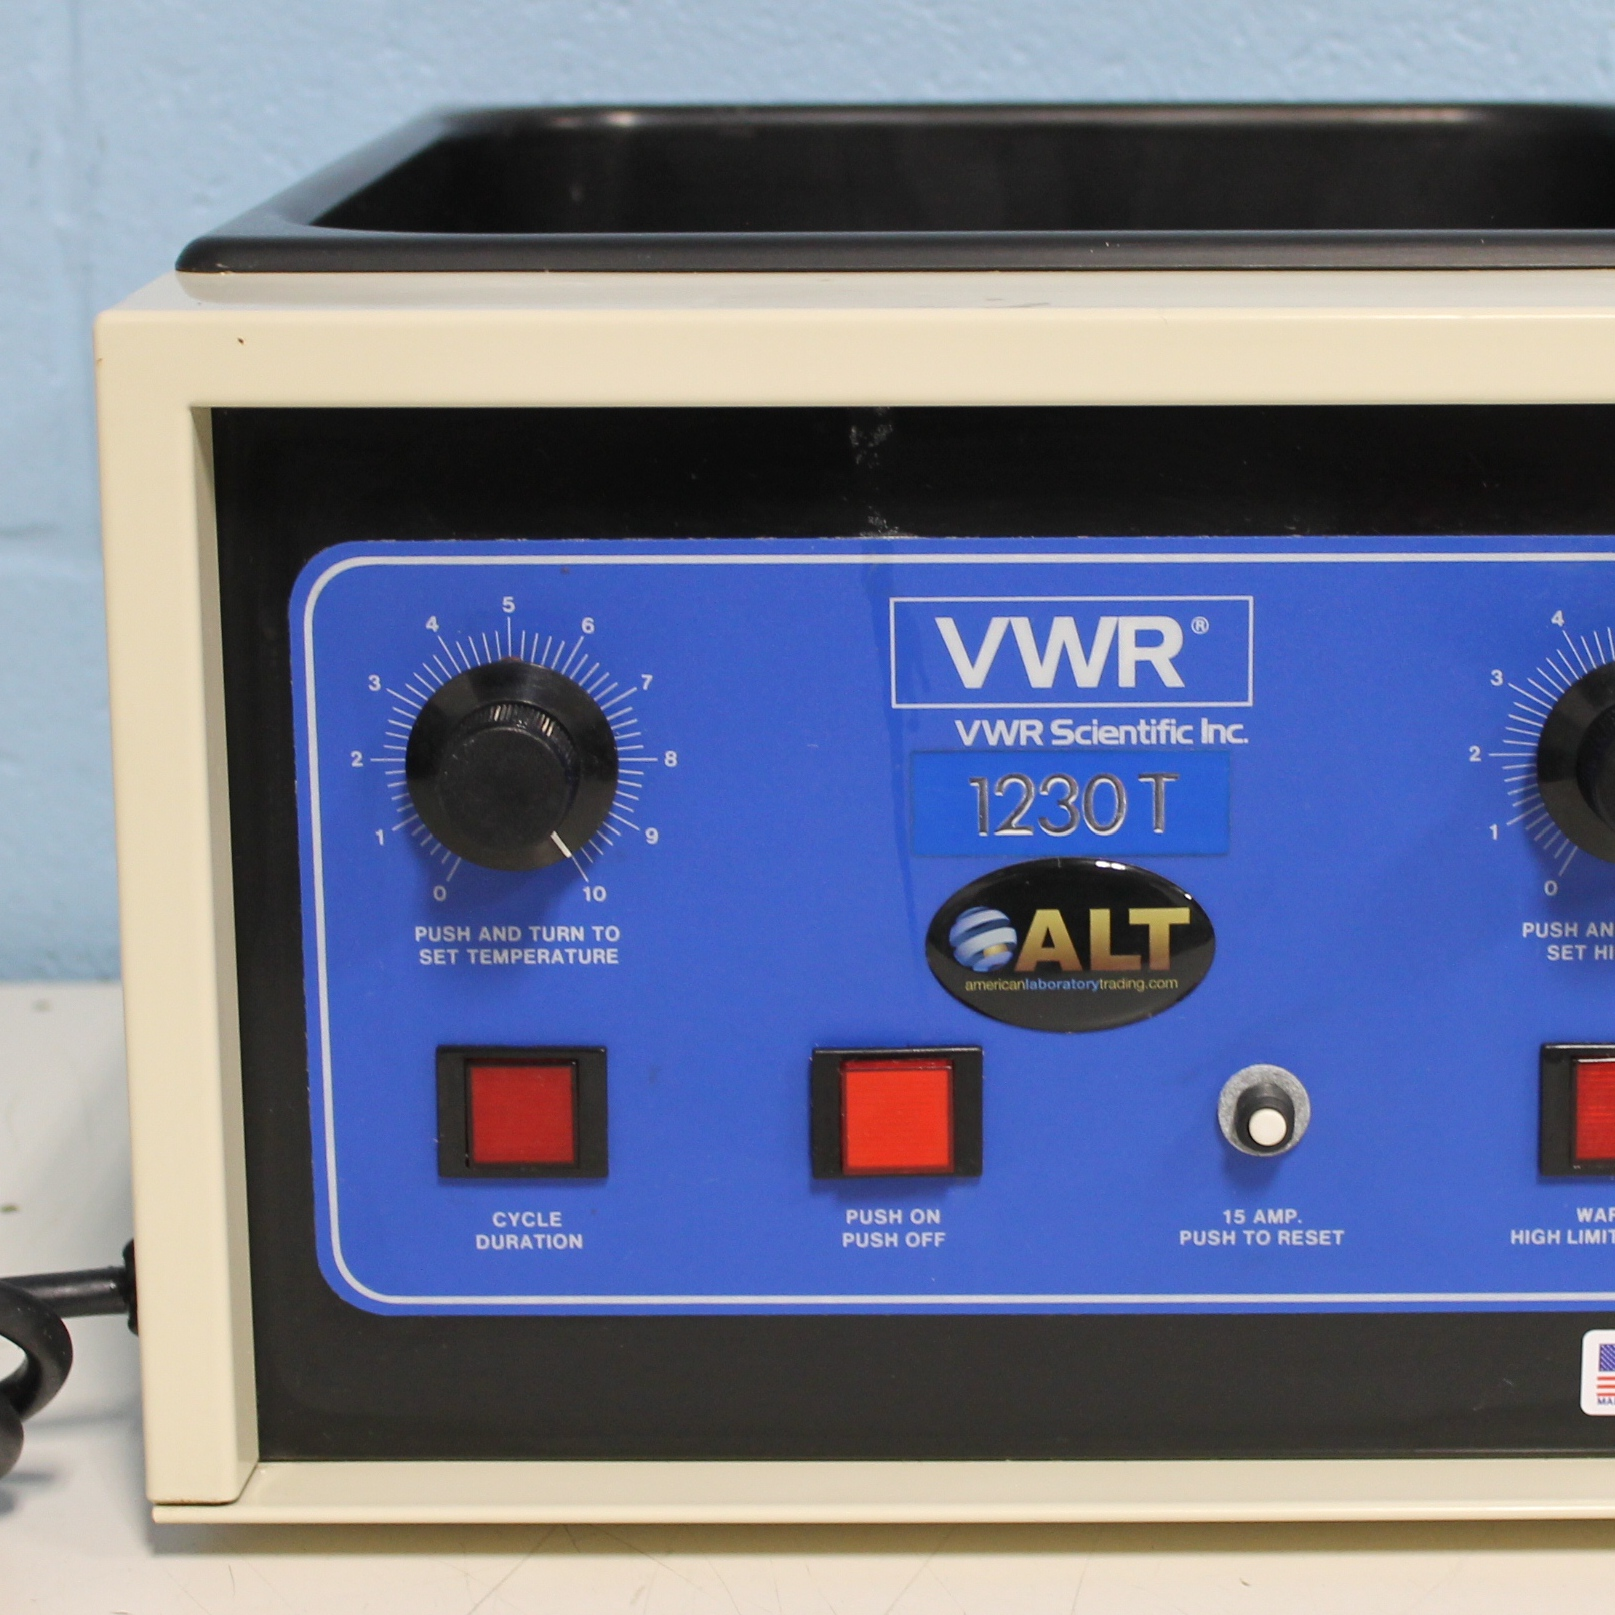 VWR 1230T Water Bath Image